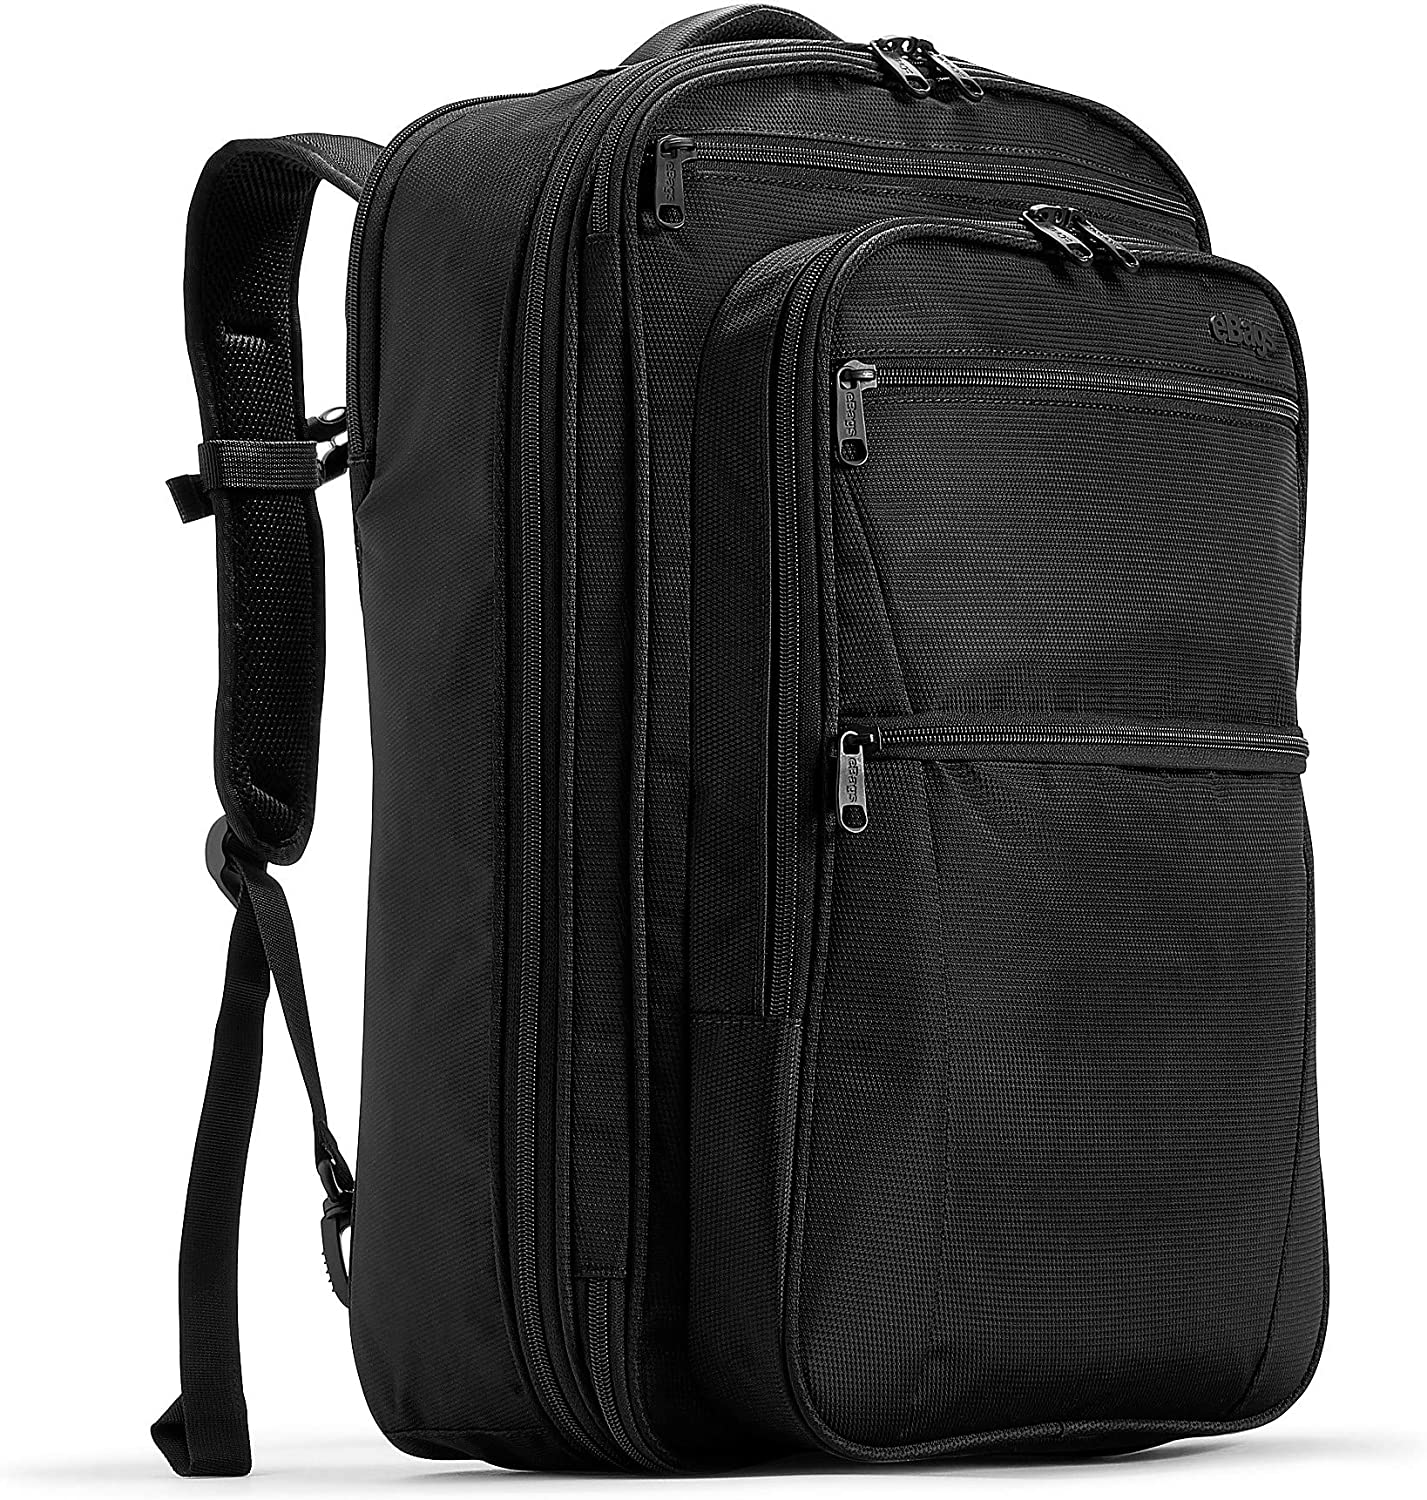 eBags EXO Travel Backpack (Black)